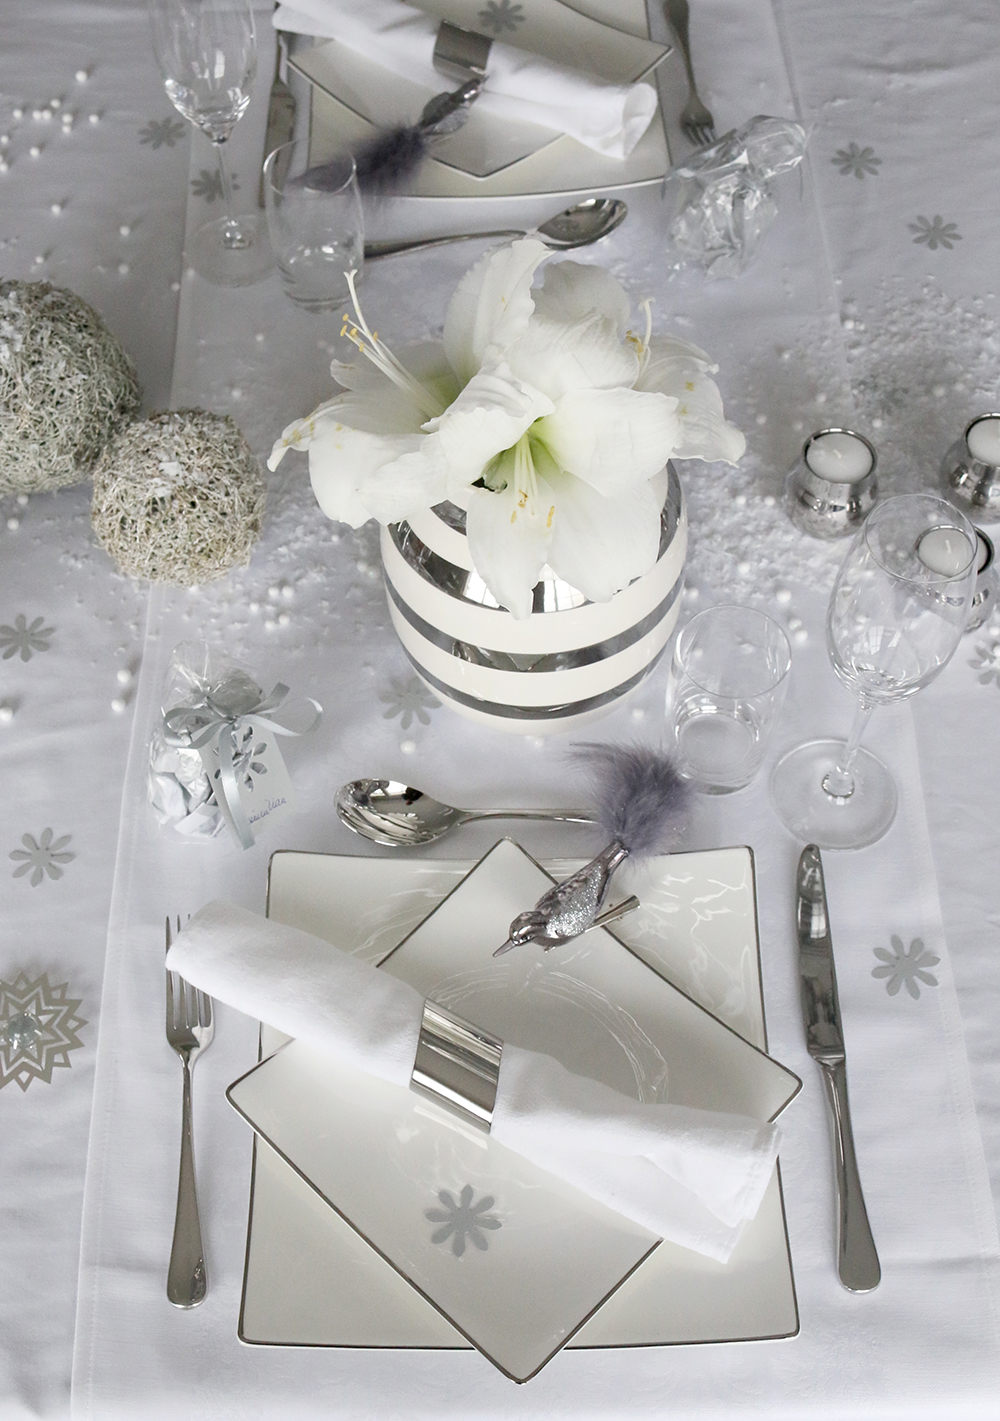 New-Year-tablesetting-7